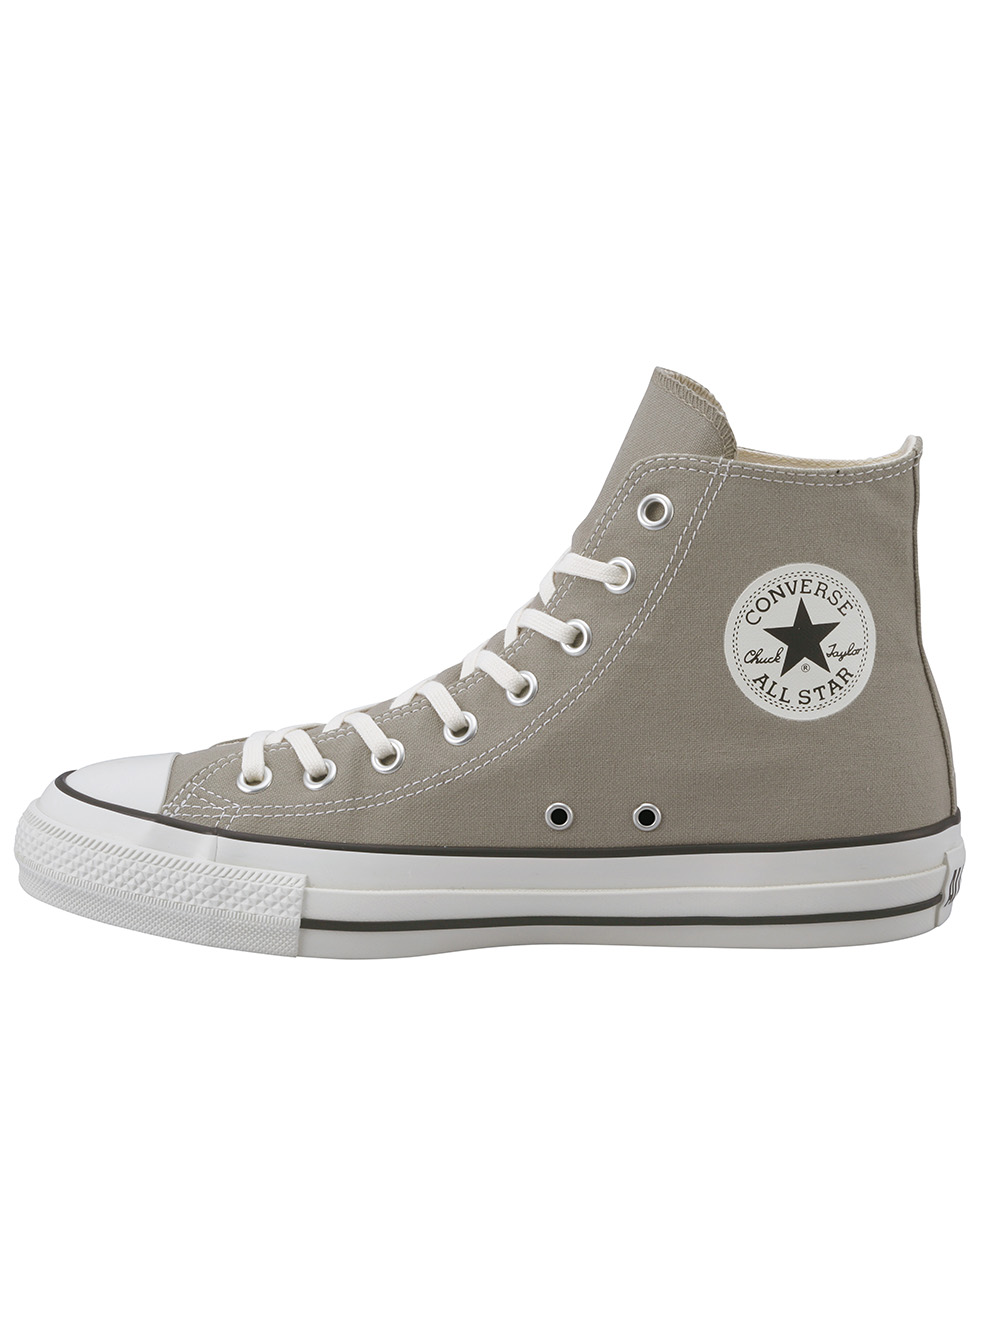 【CONVERSE】ALL STAR FOODTEXTILE HI(GRY-23.0)